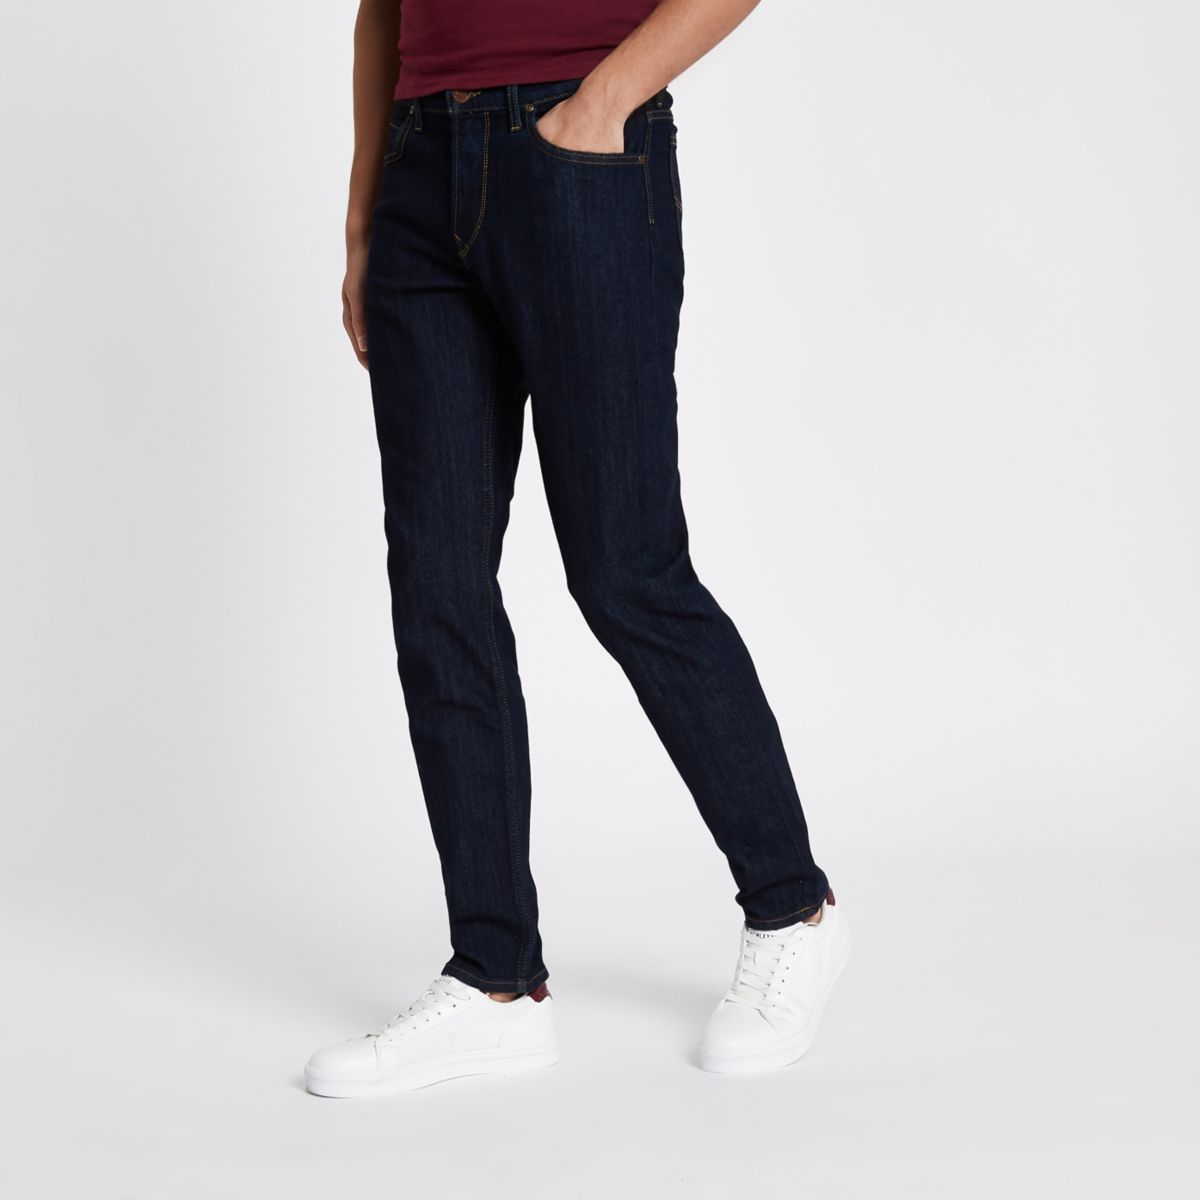 Lee dark blue slim fit Rider jeans